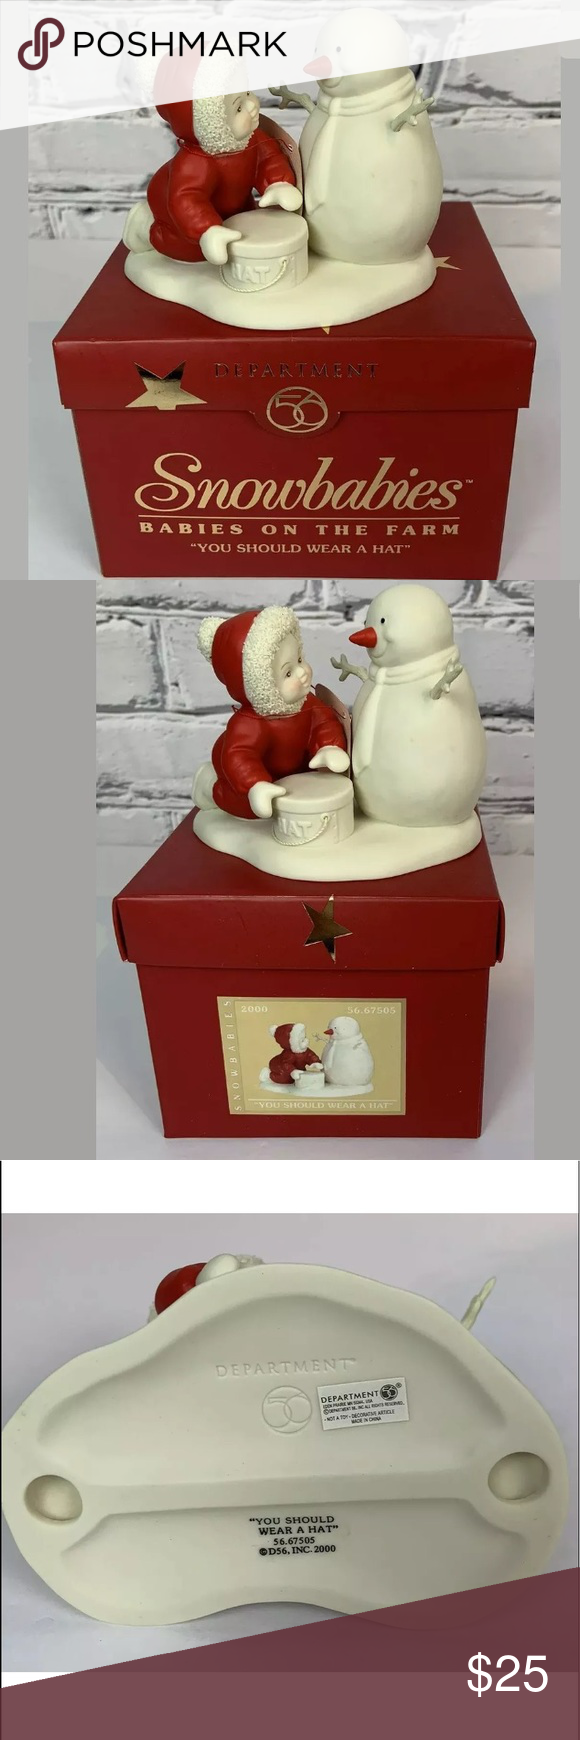 Department 56 Santa Snowbabies 2000 #67505 Department 56 Santa Snowbabies 2000 Collectable #67505  You Should Wear a Hat - Babies on the Farm  Item # 67505  This collectable does come with the box - there is some shelf wear on the box Department 56 Holiday #department56